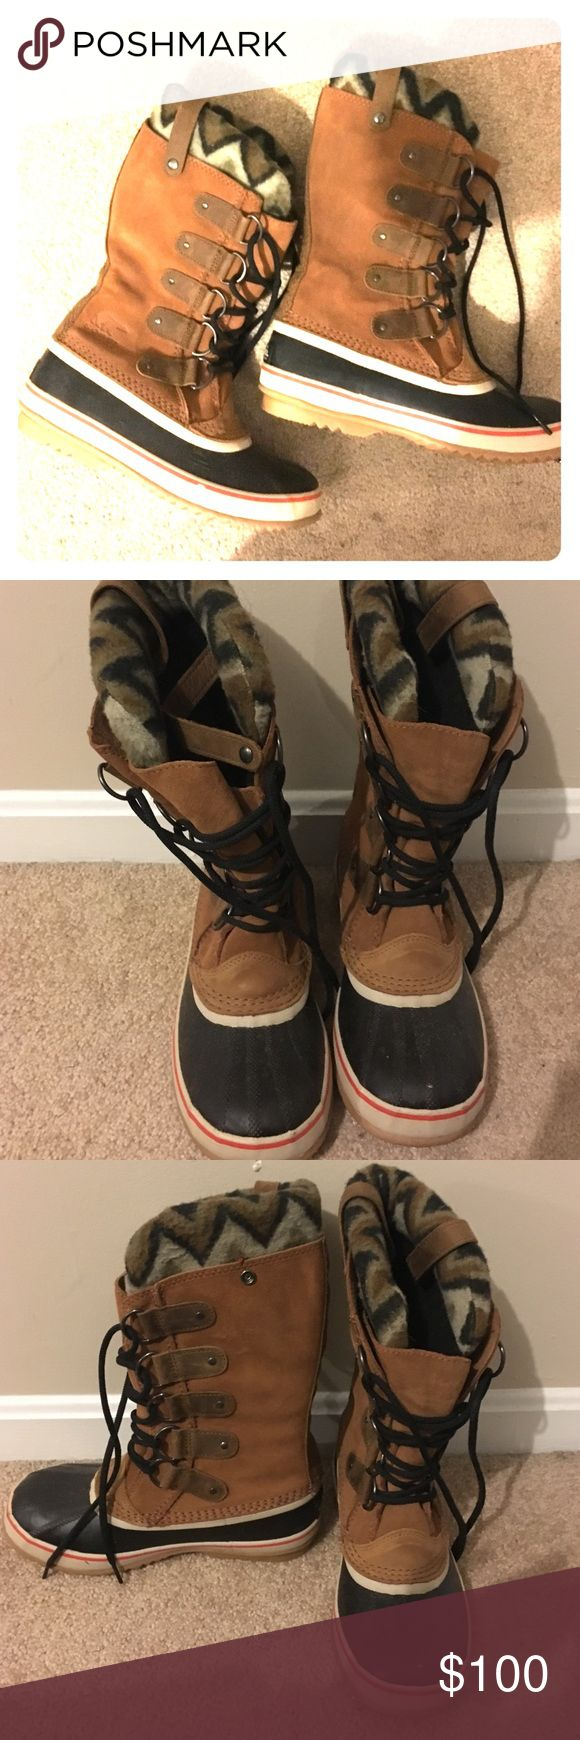 SALE: Sorel Boots Gently used Sorel Joan of Artic Boots. Great condition. Previously worn 3 times. Sorel Shoes Winter & Rain Boots